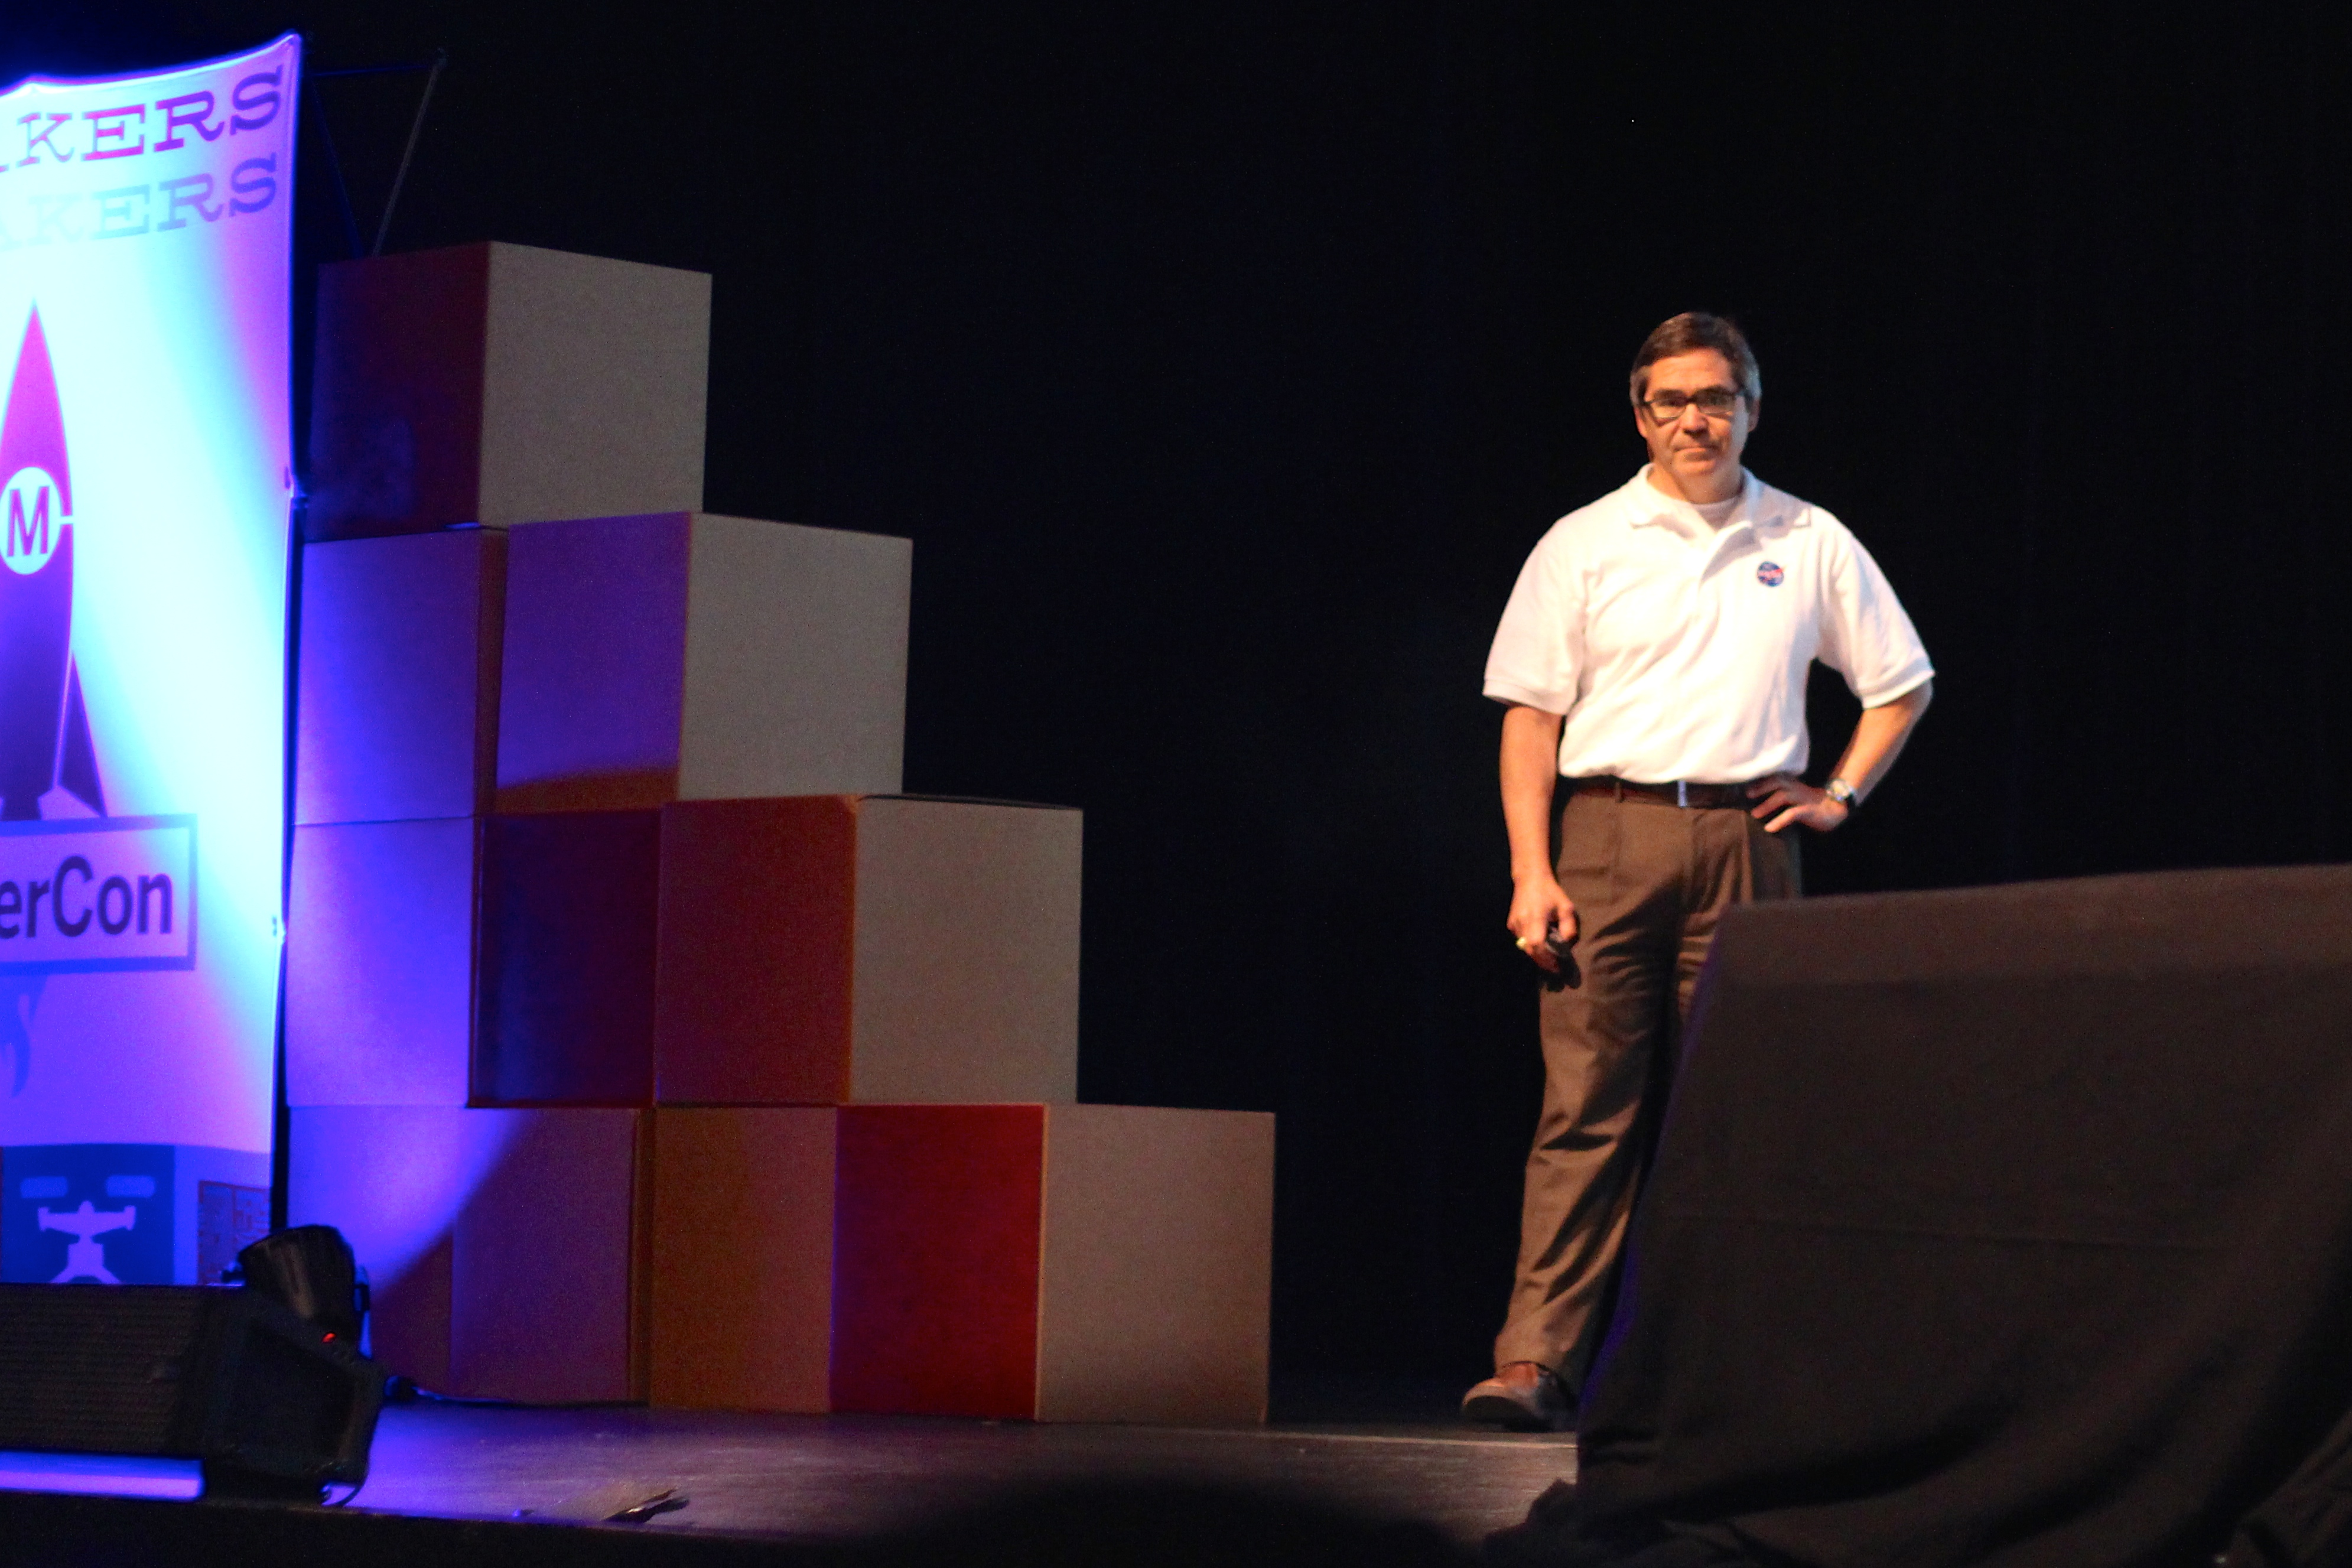 Live from MakerCon —An Interview with Sam Ortega